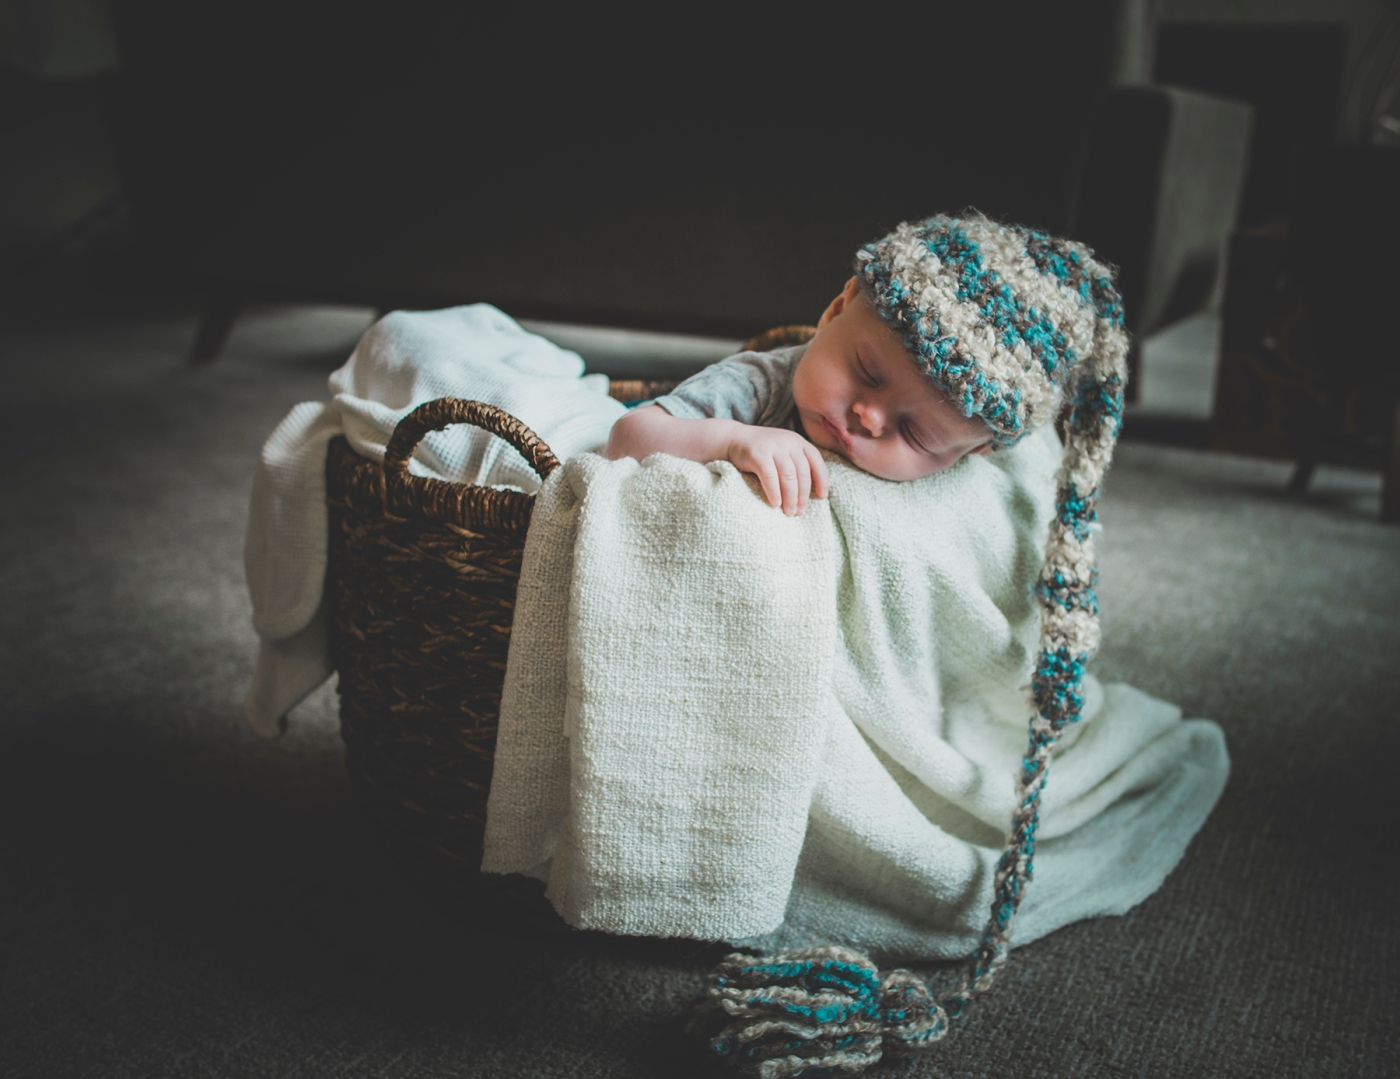 kie-seattle-newborn-jane-speleers-photography-dsc_4171